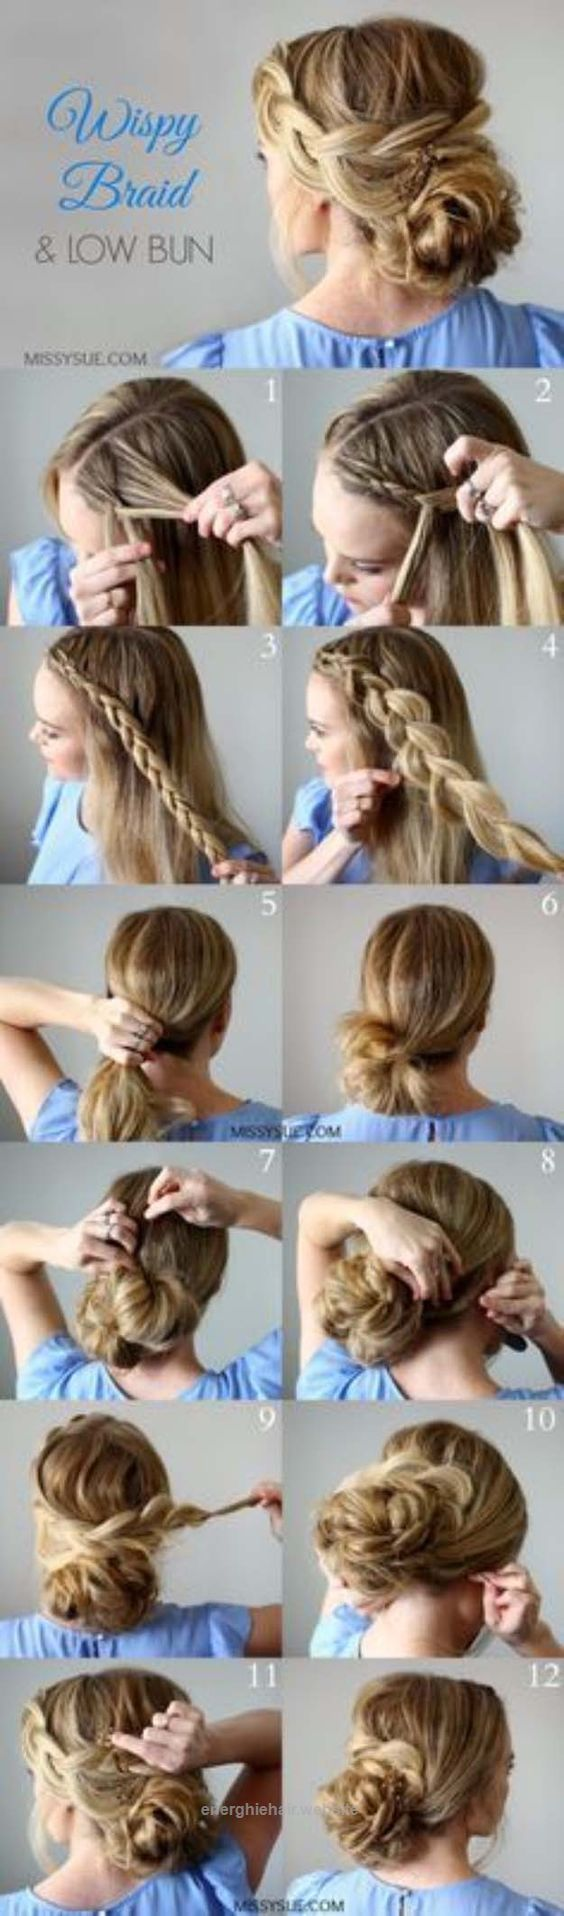 Nice Best Hairstyles for Brides – Wispy Braid and Low Bun- Amazing Hair Styles and Looks for Half Up Medium Styles, Updo With Long Hair, Short Curls, Vintage Looks with Veil, Headpieces, or W ..